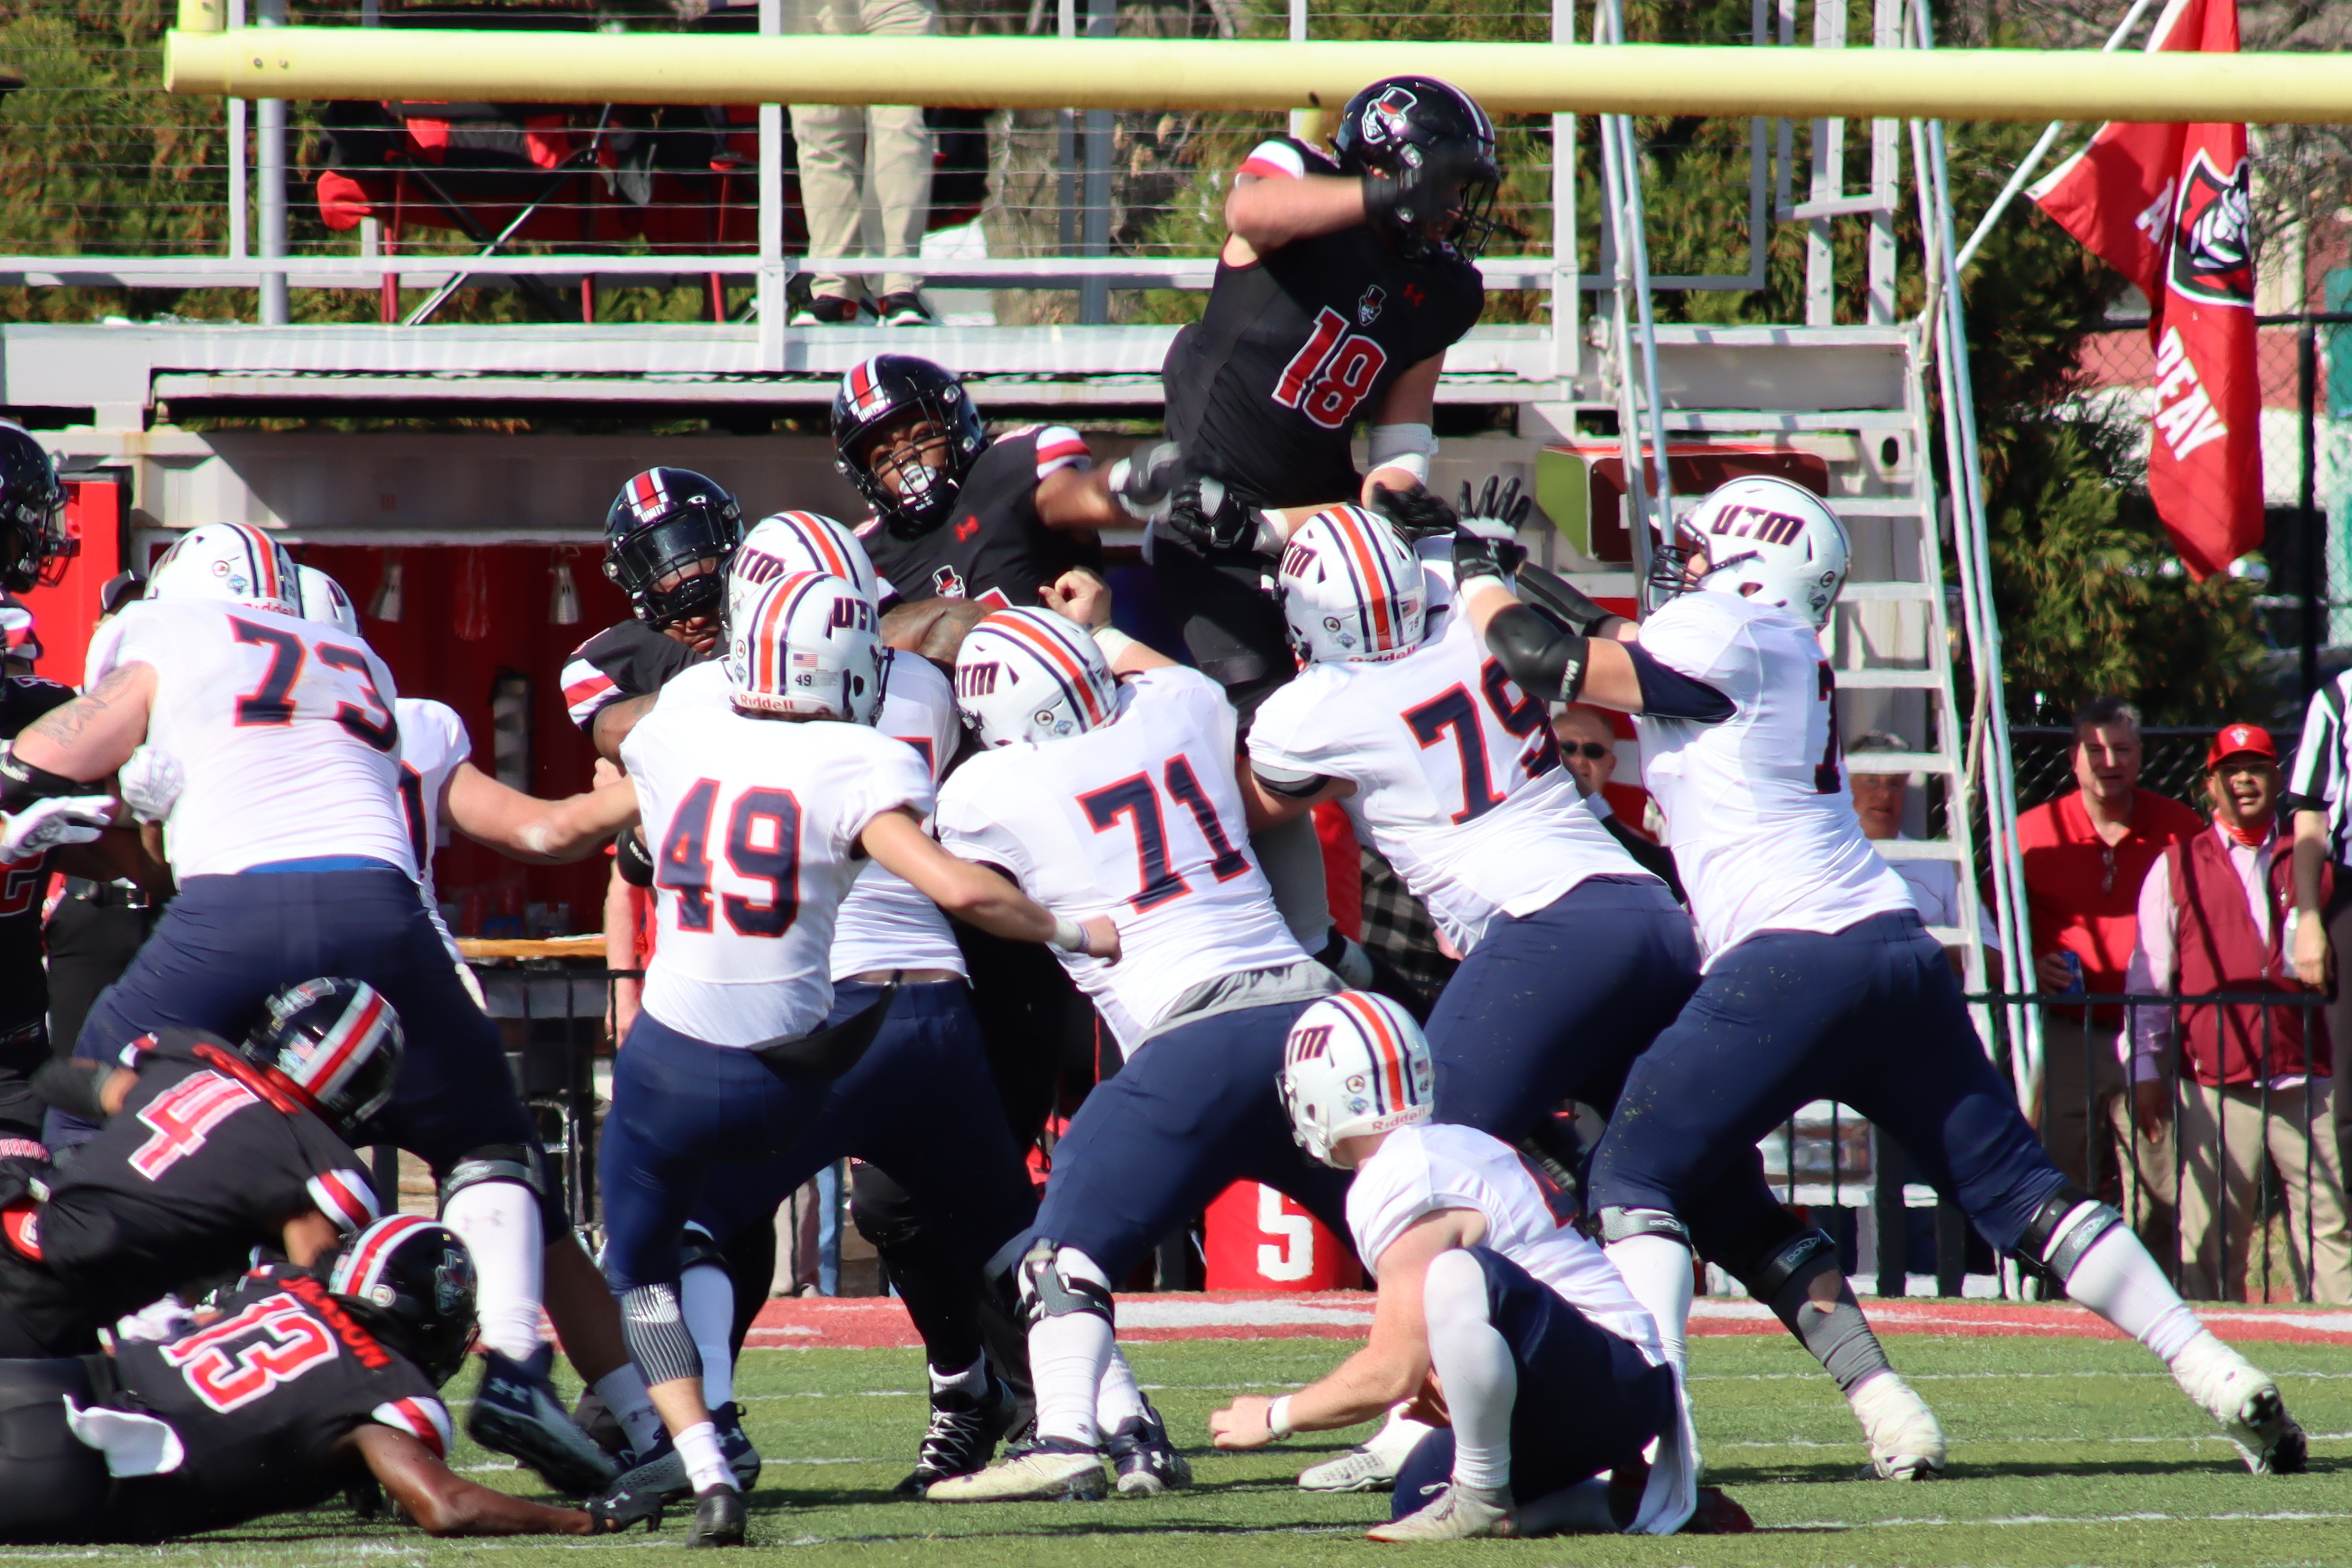 Jack McDonald (18) attempts to block a field goal from UT Martin's Tyler Larco (49). NICHOLE BARNES   THE ALL STATE